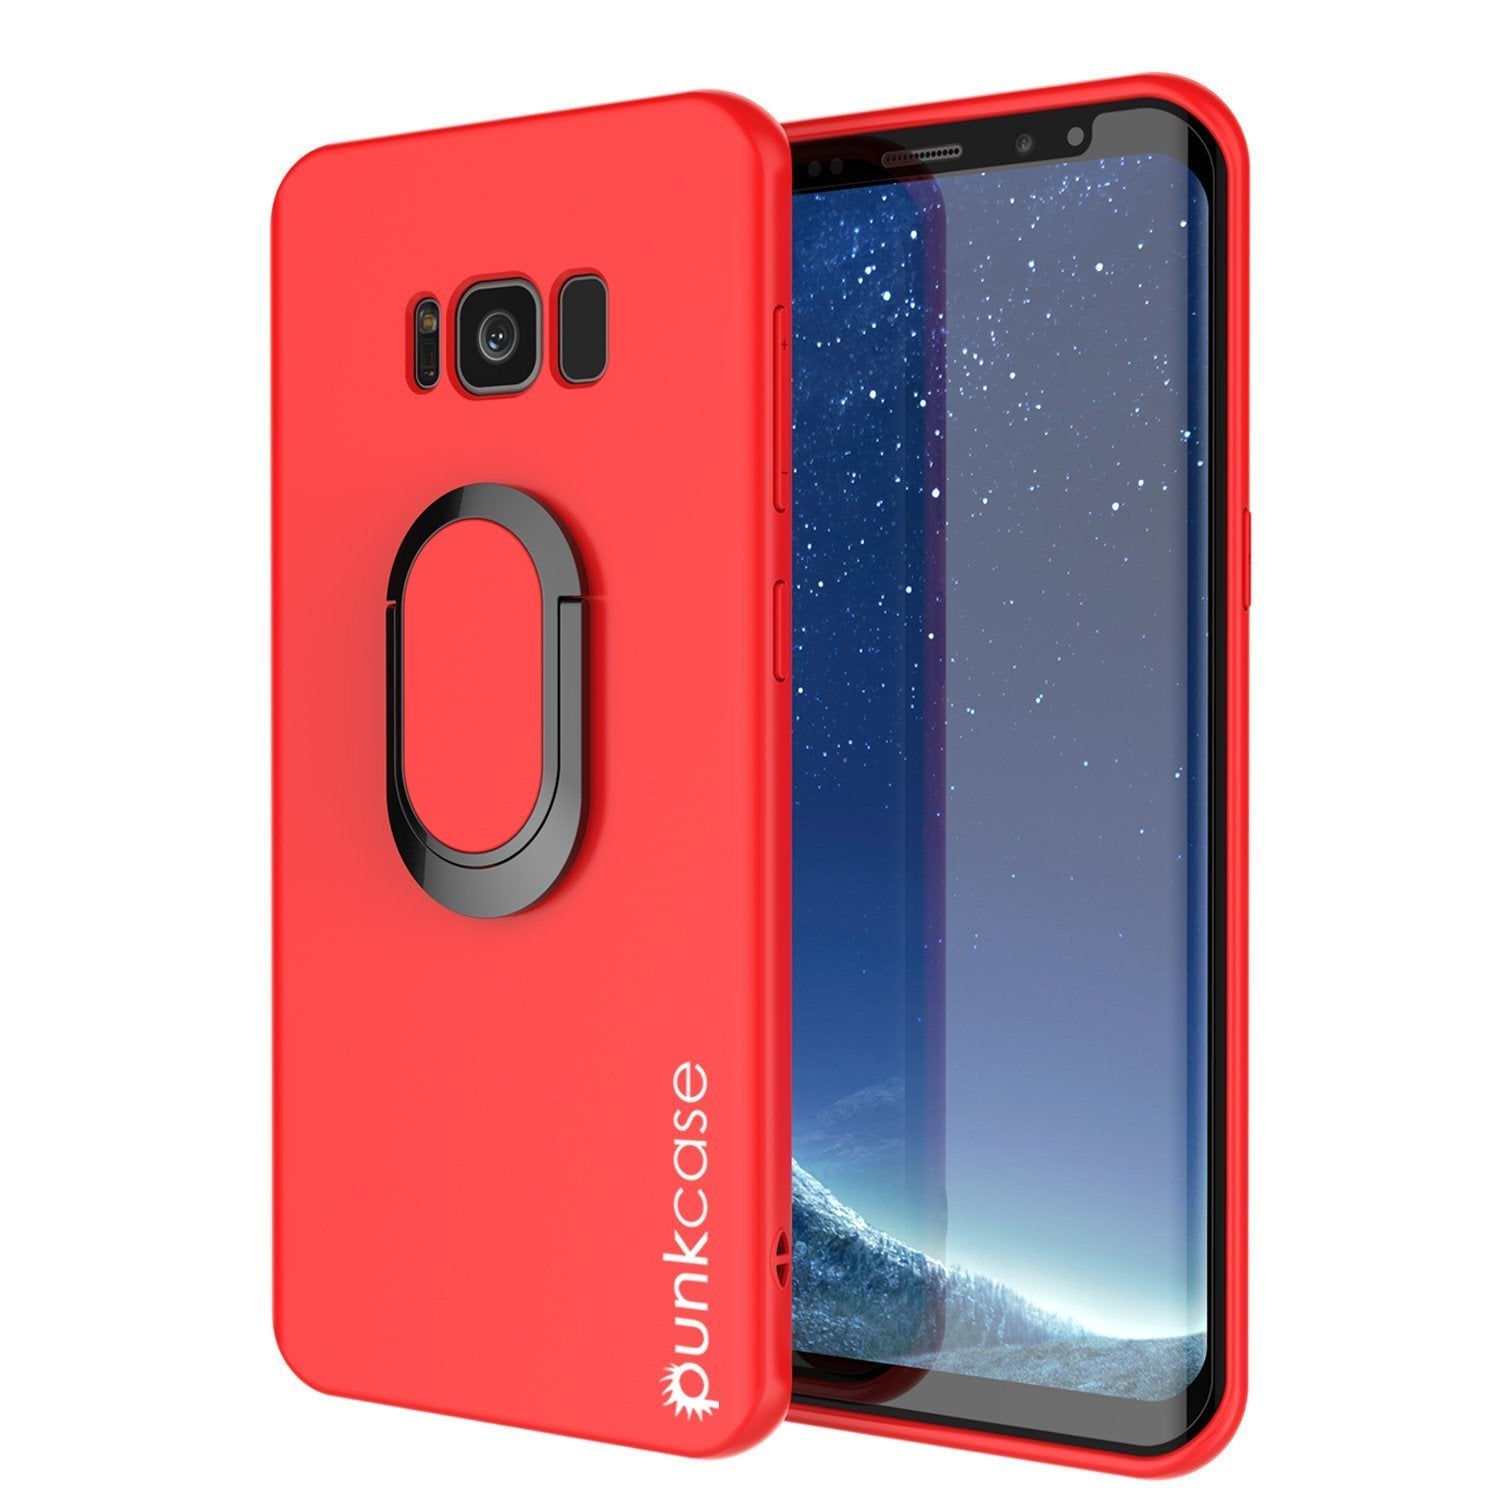 Galaxy S8 PLUS, Punkcase Magnetix Protective TPU Cover W/ Kickstand, Screen Protector [Red]